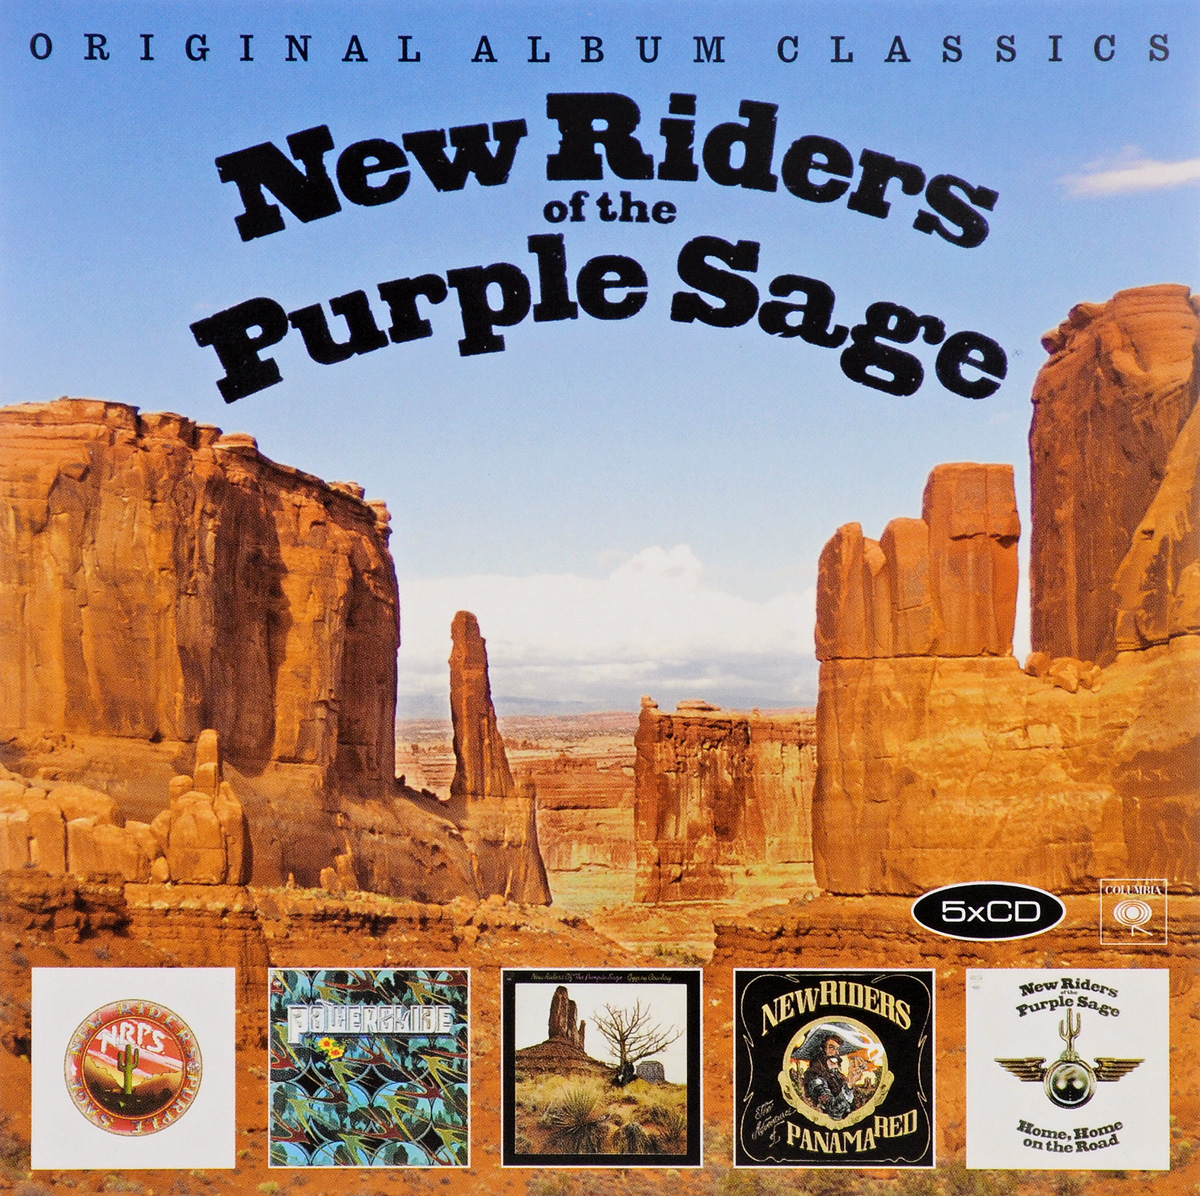 New Riders Of The Purple Sage New Riders Of The Purple Sage. Original Album Classics (New Riders Of The Purple Sage / Powerglide / Gypsy Cowboy / The Adventures Of Panama Red / Home, Home On The Road) rockspace zircon stereo earphone quality sound earbud for iphone in ear earphones hands free headset with mic right angle plug